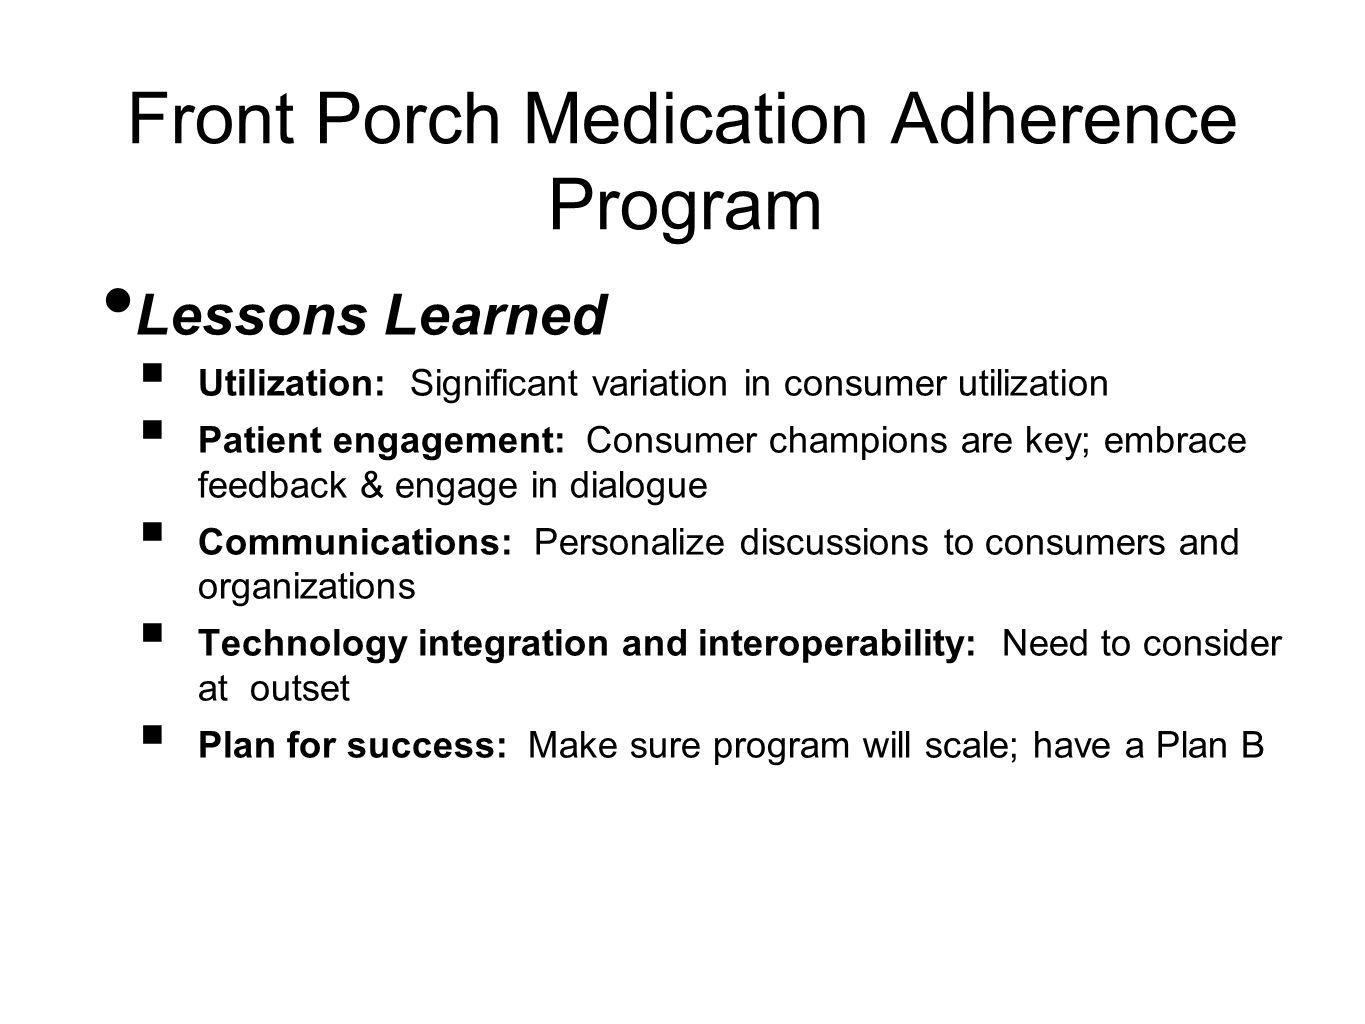 Front Porch Medication Adherence Program Lessons Learned Utilization: Significant variation in consumer utilization Patient engagement: Consumer champ